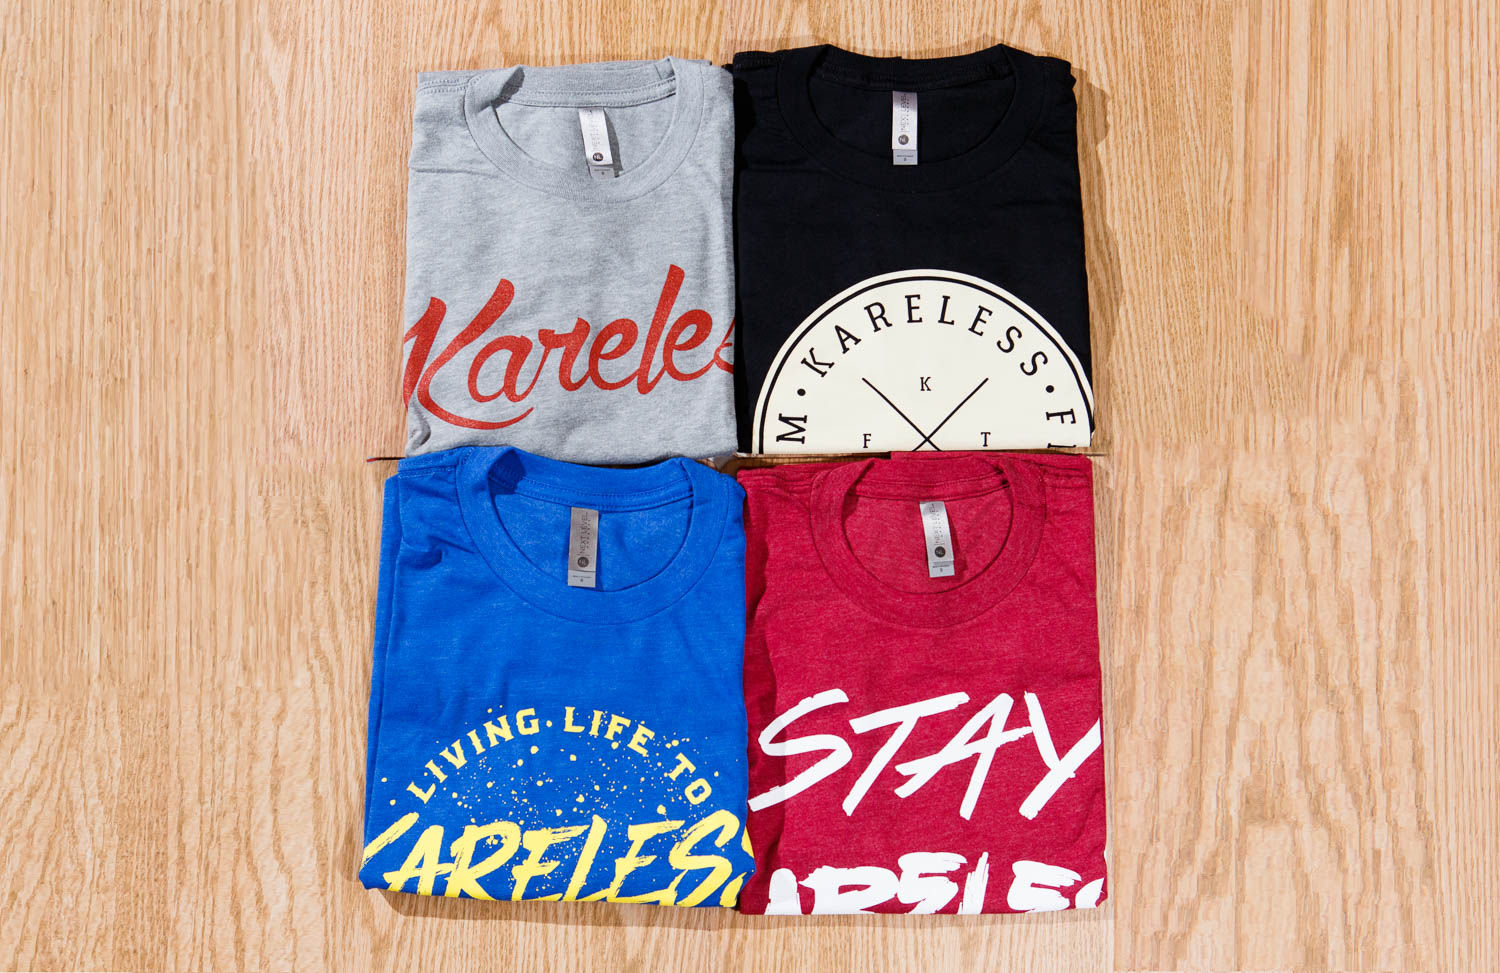 Kareless apparel